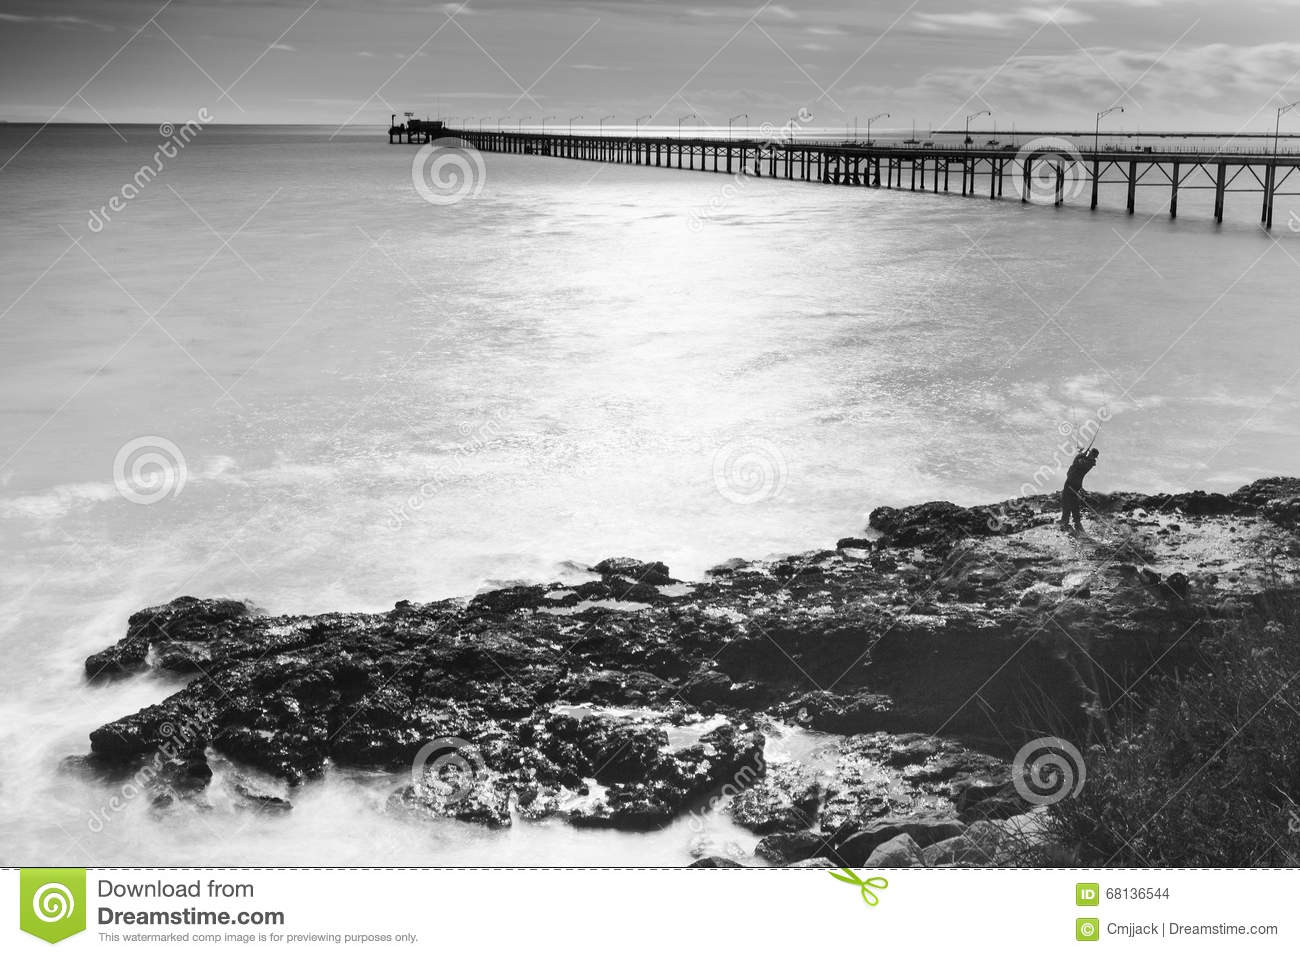 a man fishing on a rock facing the pacific ocean with a view of a